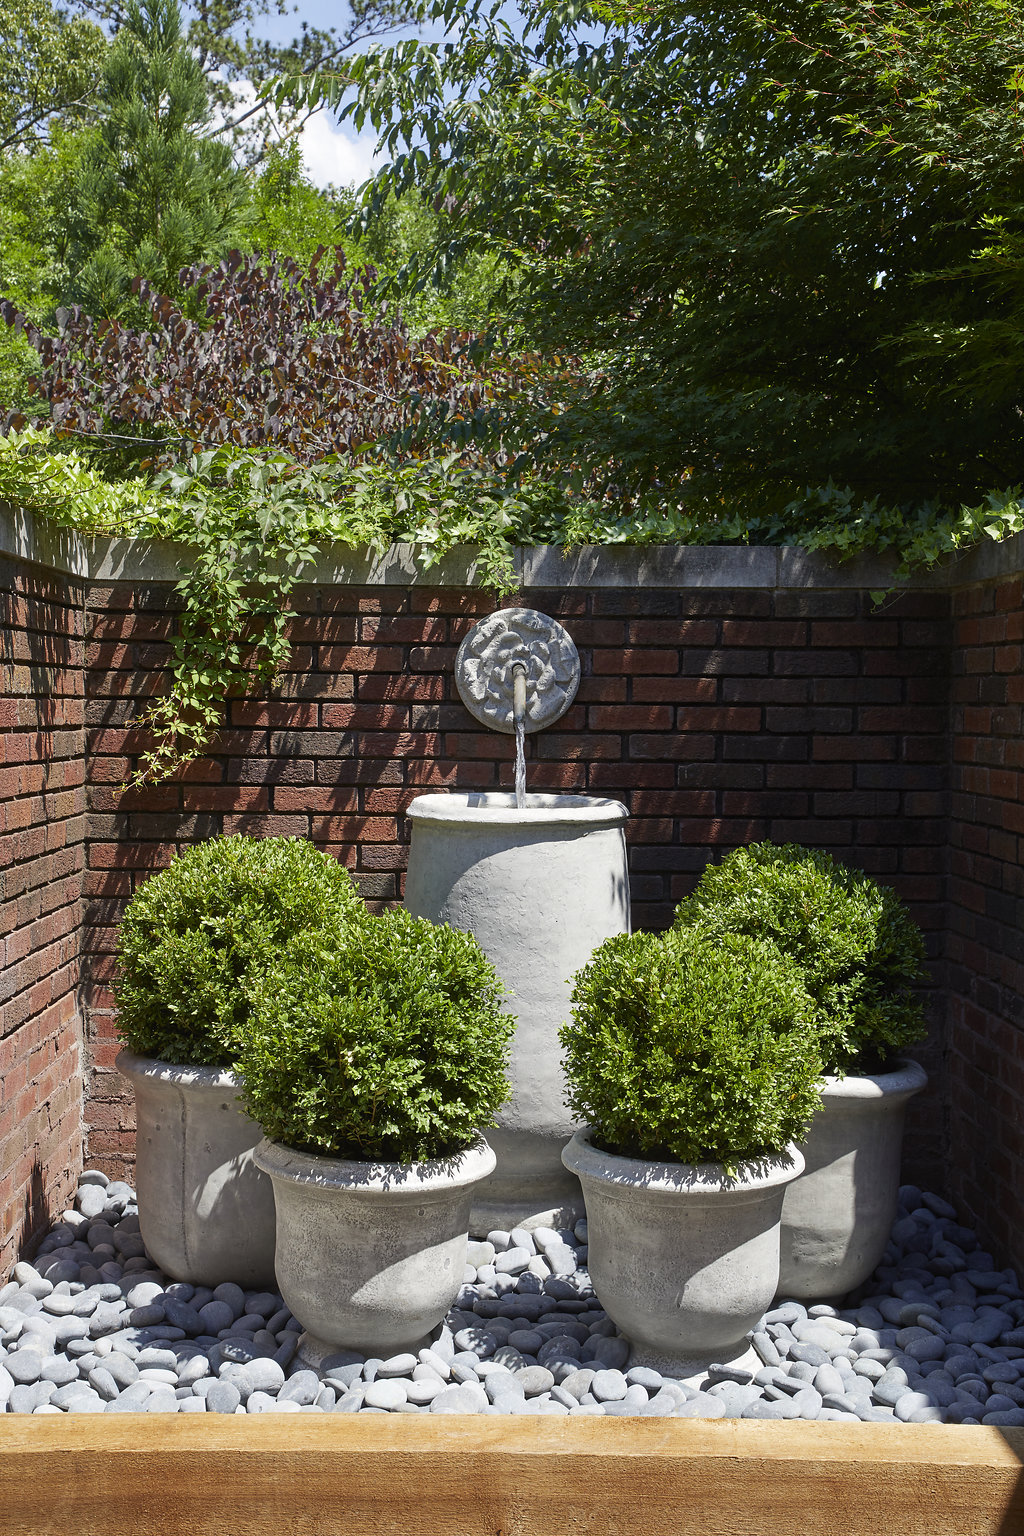 Custom built fountain surrounded by shrubs planted inside of custom built planters.